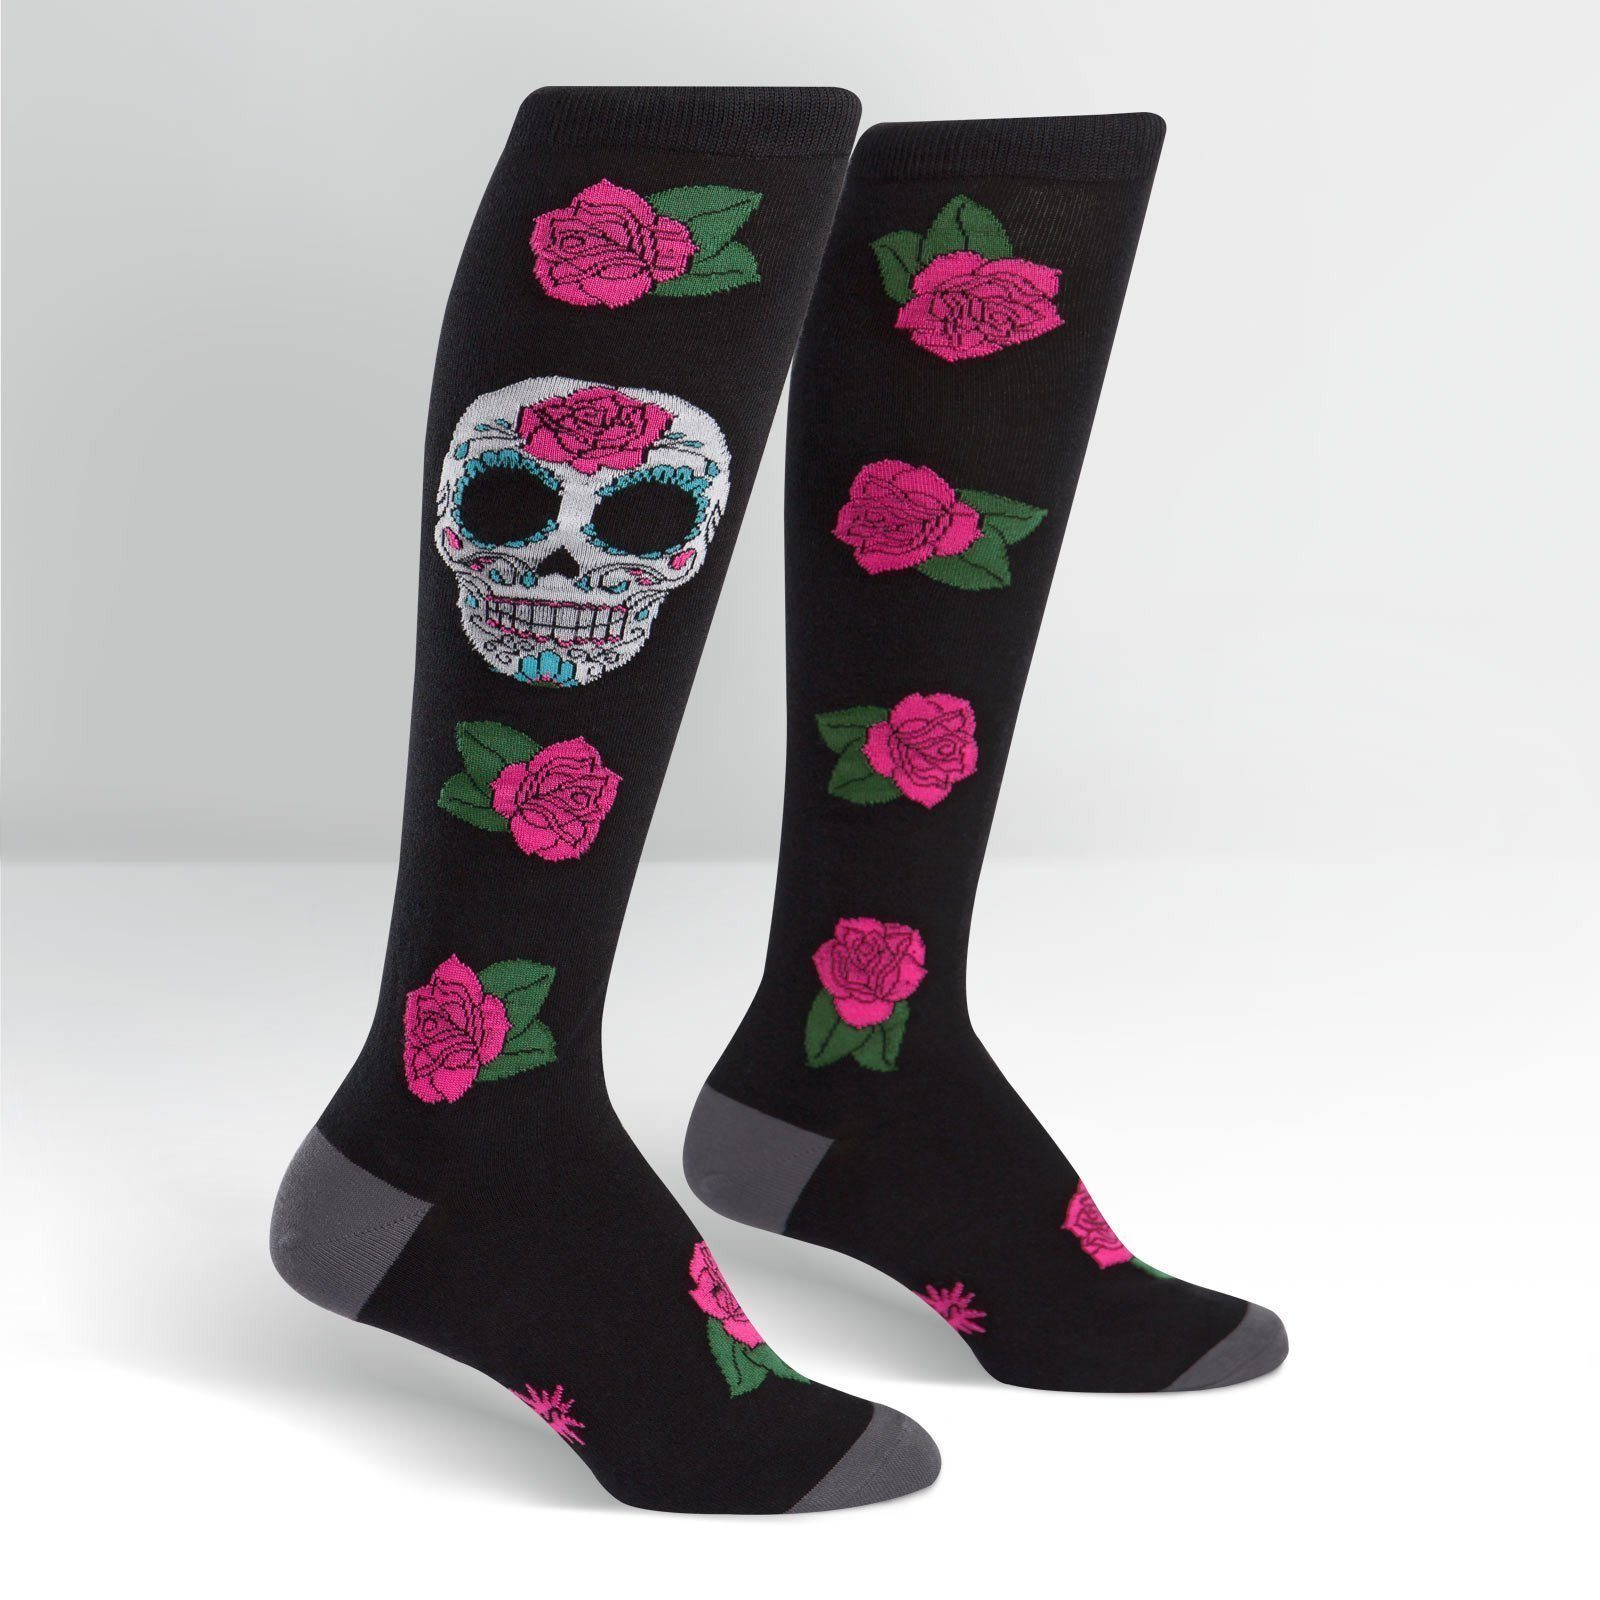 Sock It To Me - Sugar Skull Knee High Socks | Women's - Knock Your Socks Off